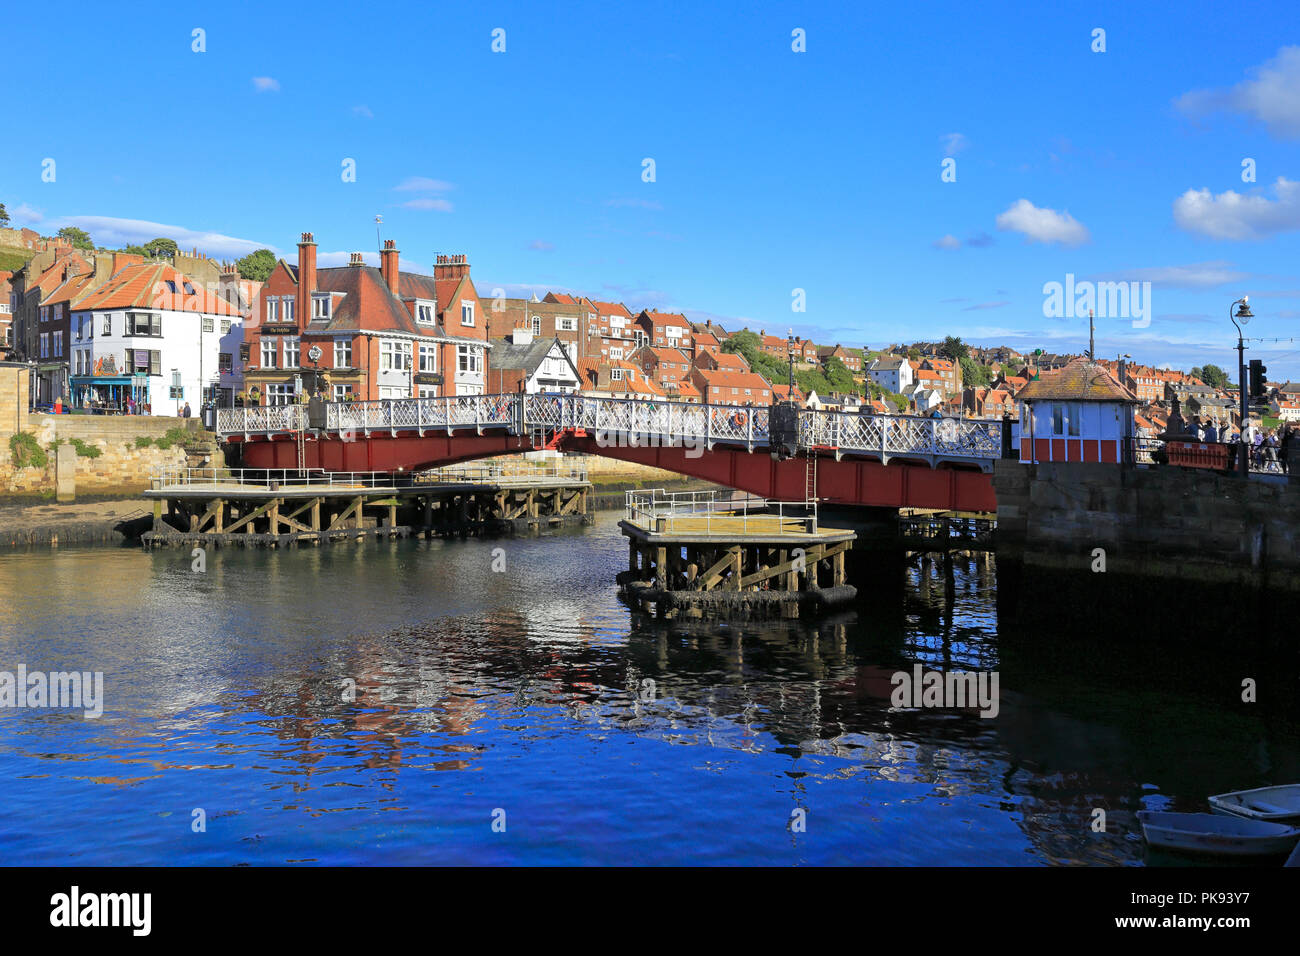 The Swing Bridge over the River Esk, Whitby, North Yorkshire, England, UK. - Stock Image